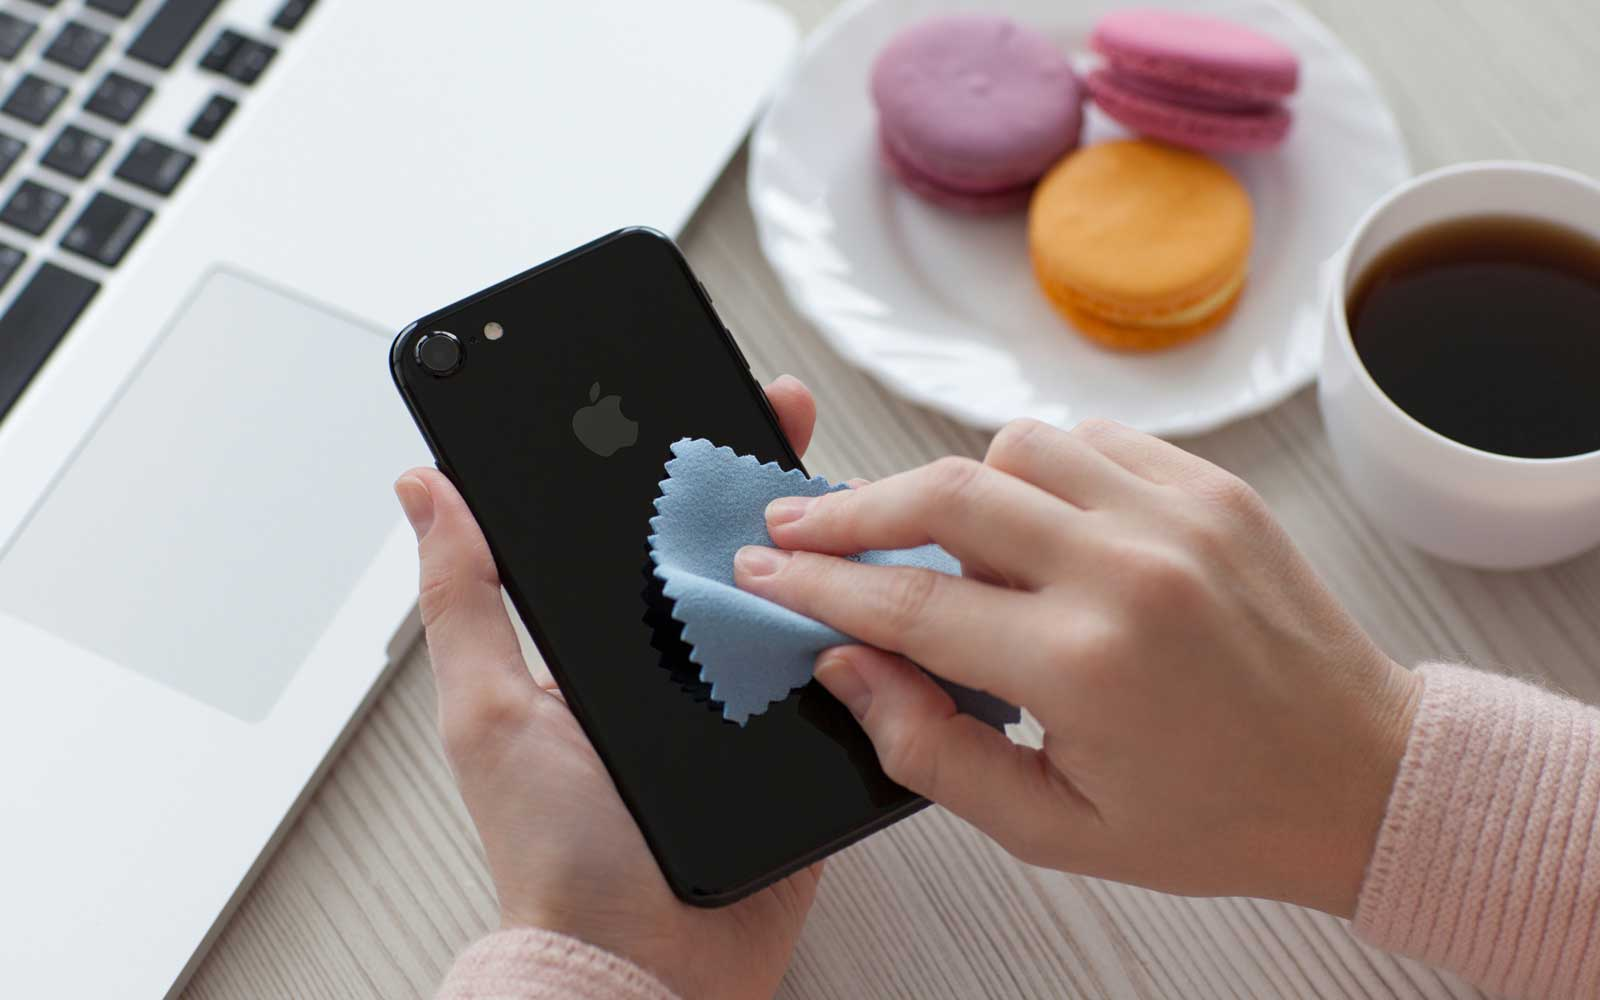 Woman holding iPhone 7 Jet Black Onyx and cleaning it